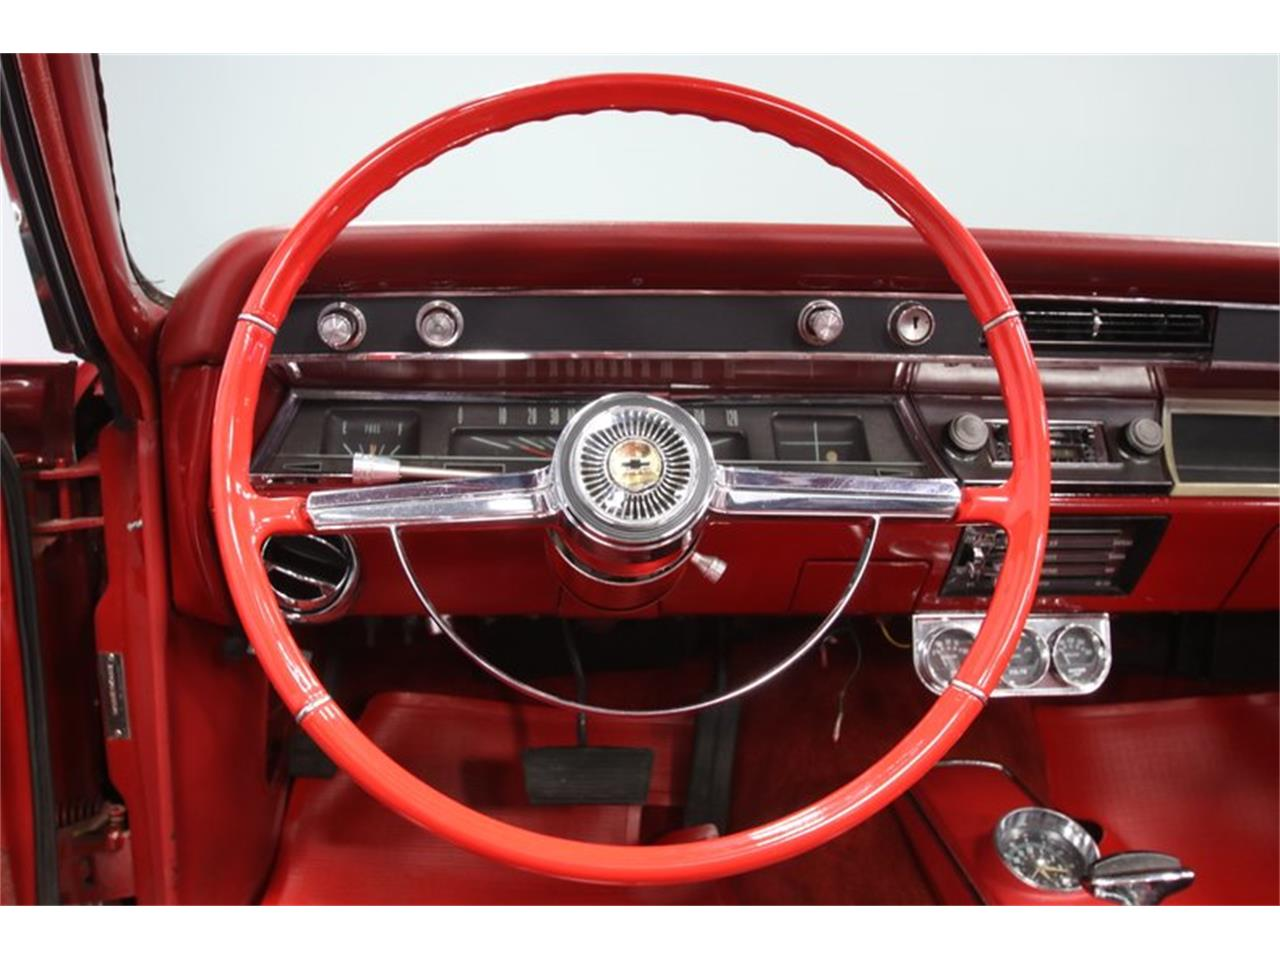 Large Picture of '66 Chevrolet Chevelle located in Concord North Carolina - $43,995.00 - PS51